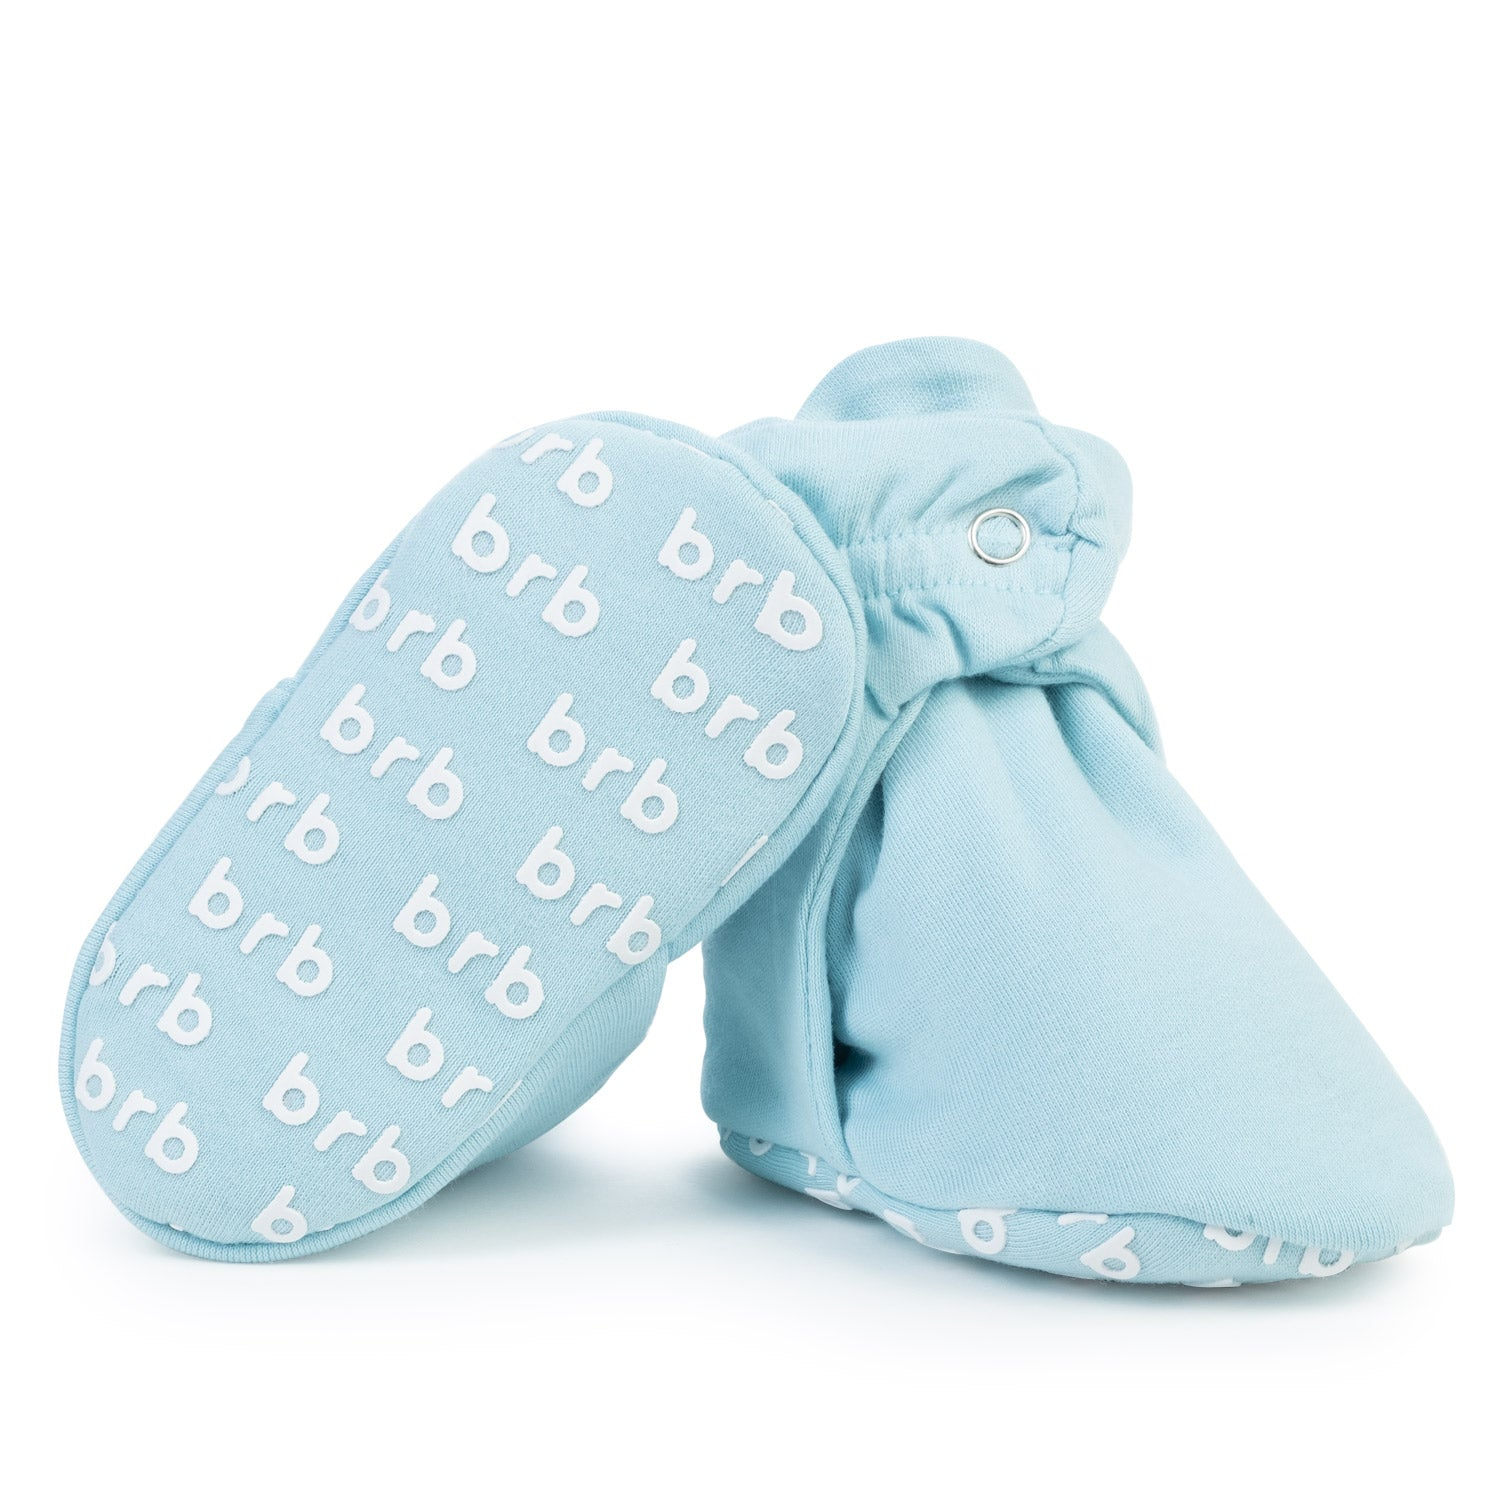 BirdRock Baby Lightweight Booties